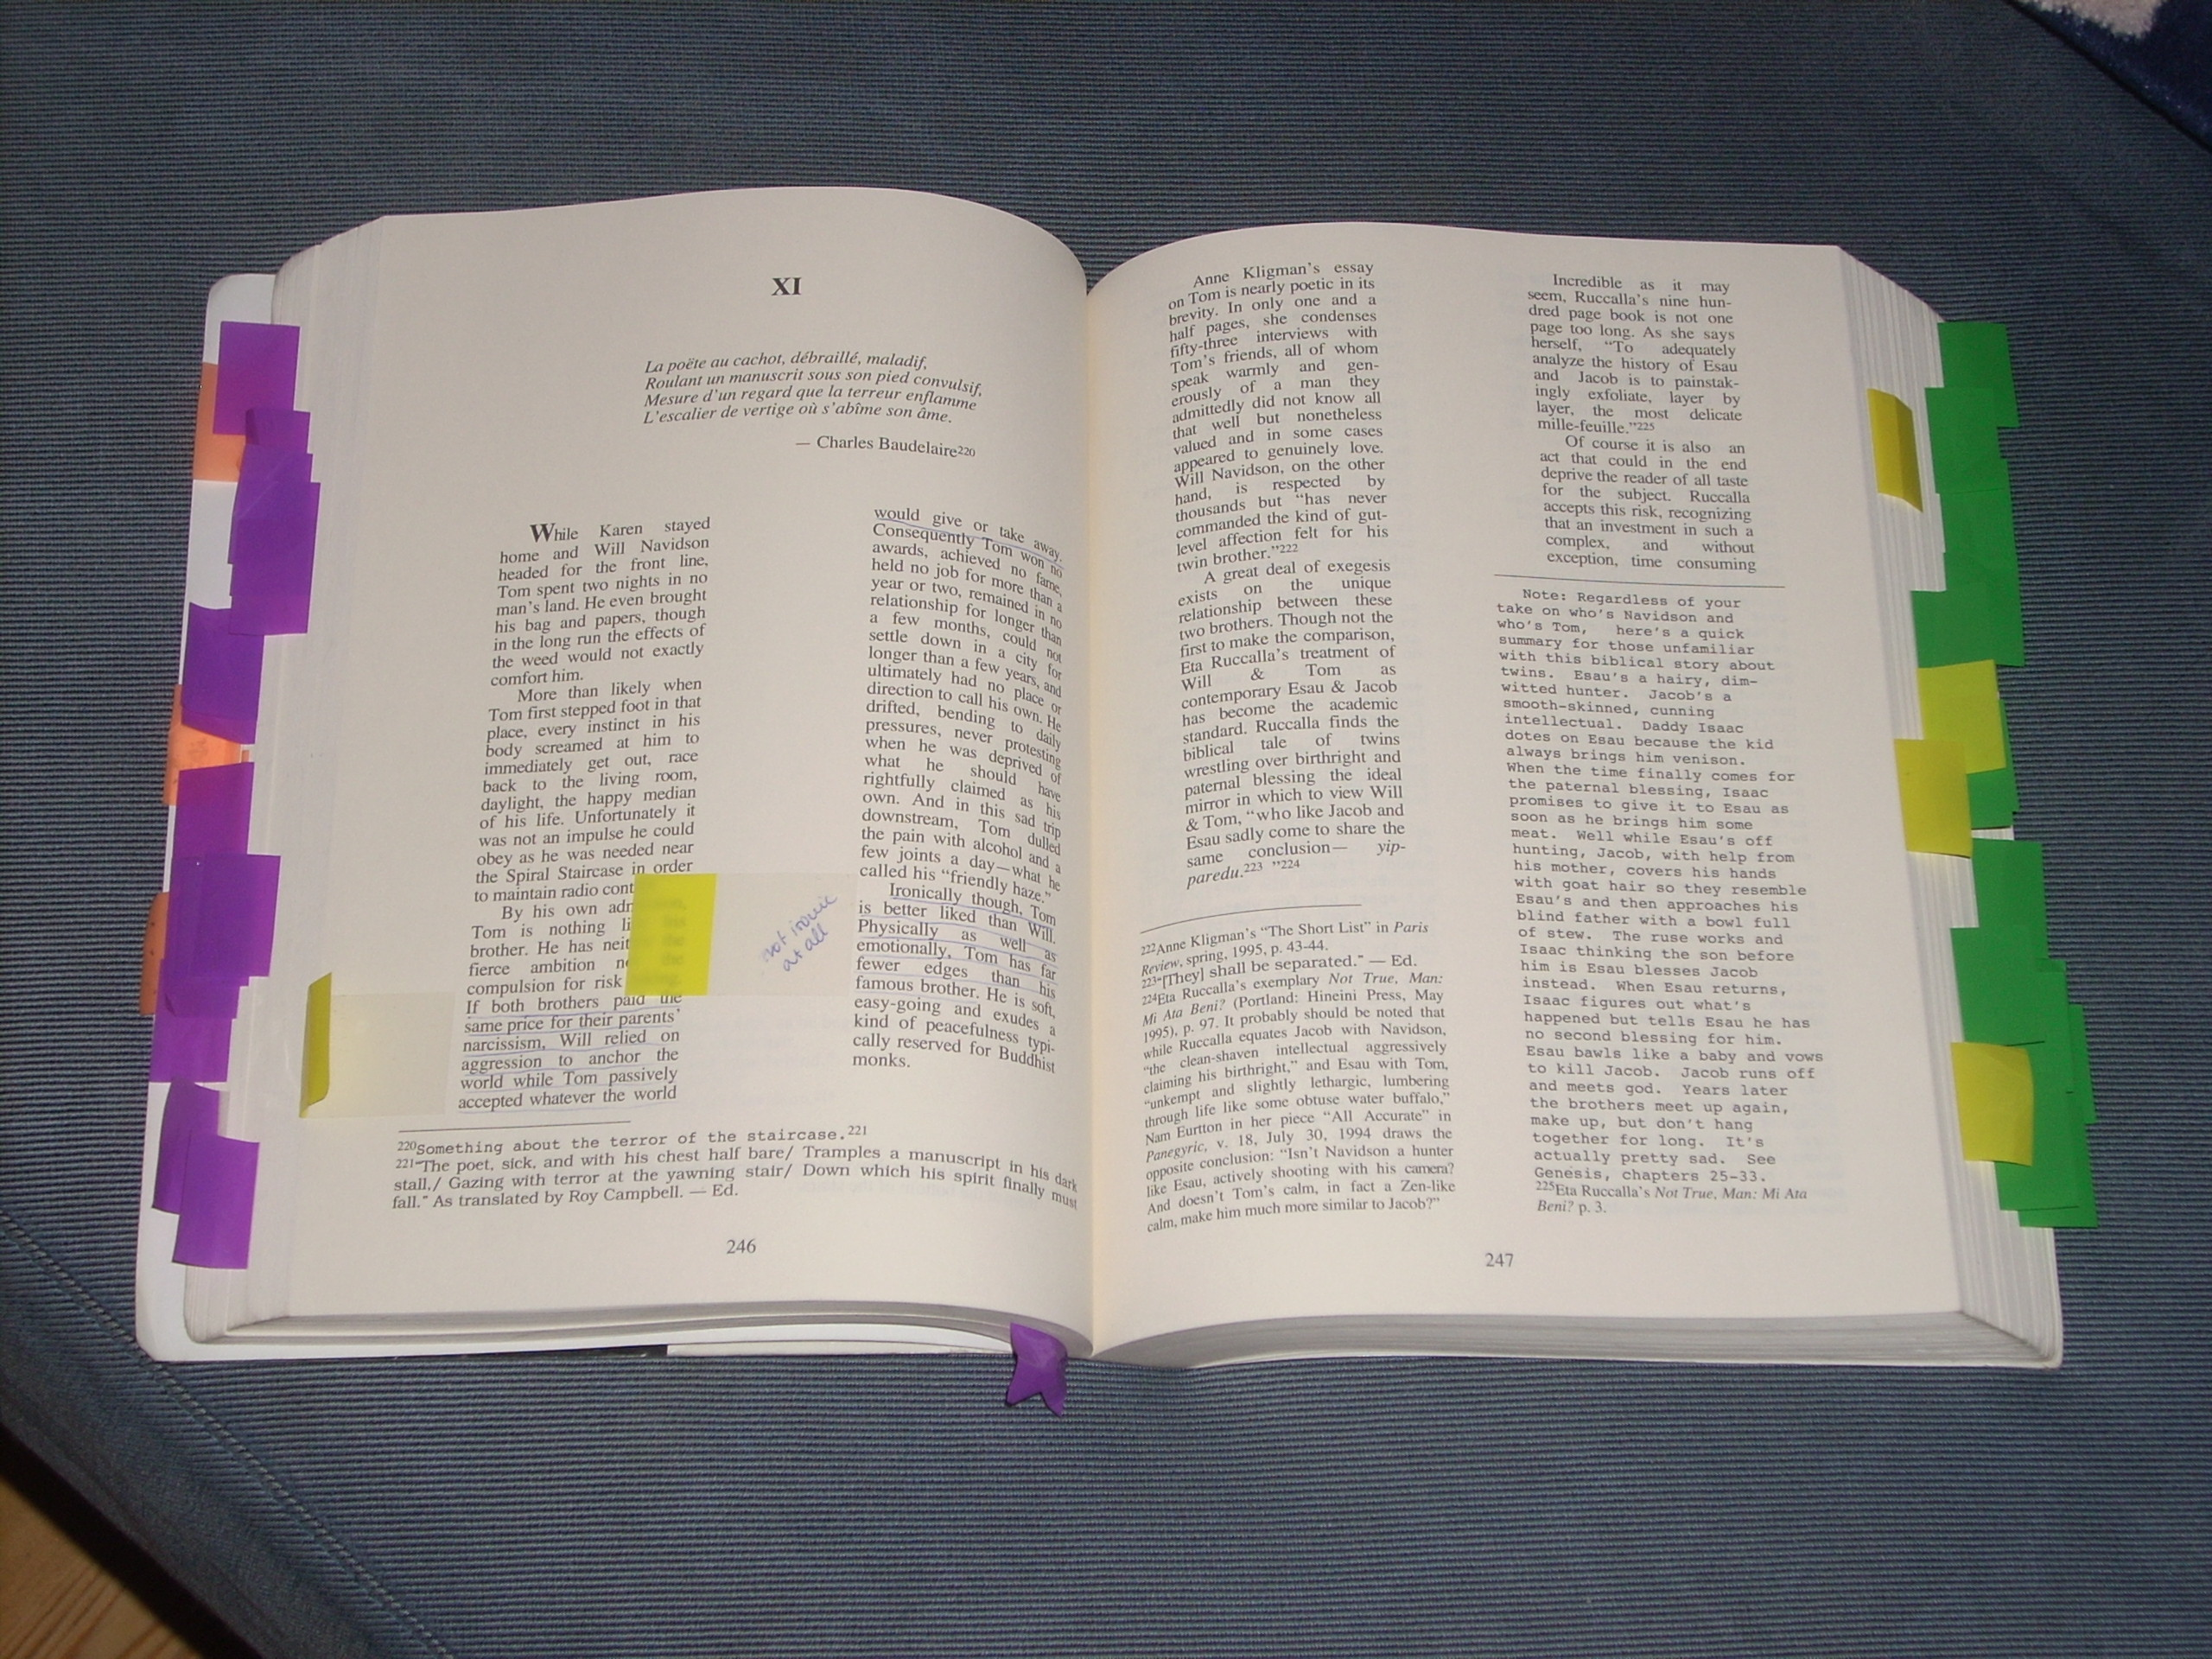 re the picture of dorian gray oscar wilde s stuff now for dorian gray not one index marker why well i figured that i would have to mark the pages where i didn t underline anything and that even for me